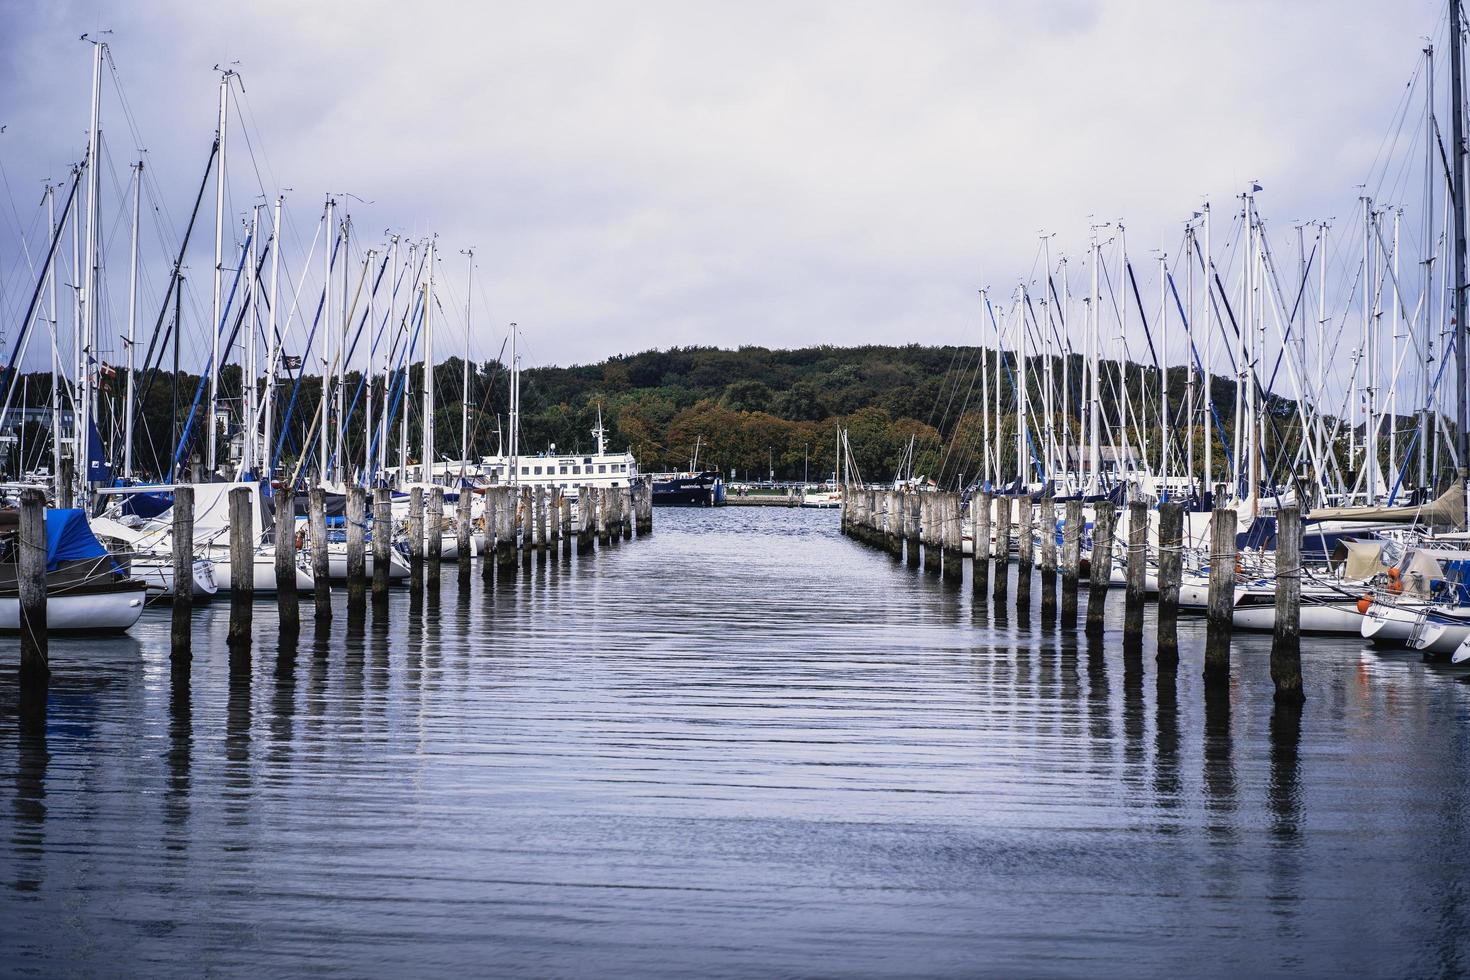 A seascape view of water with boats photo